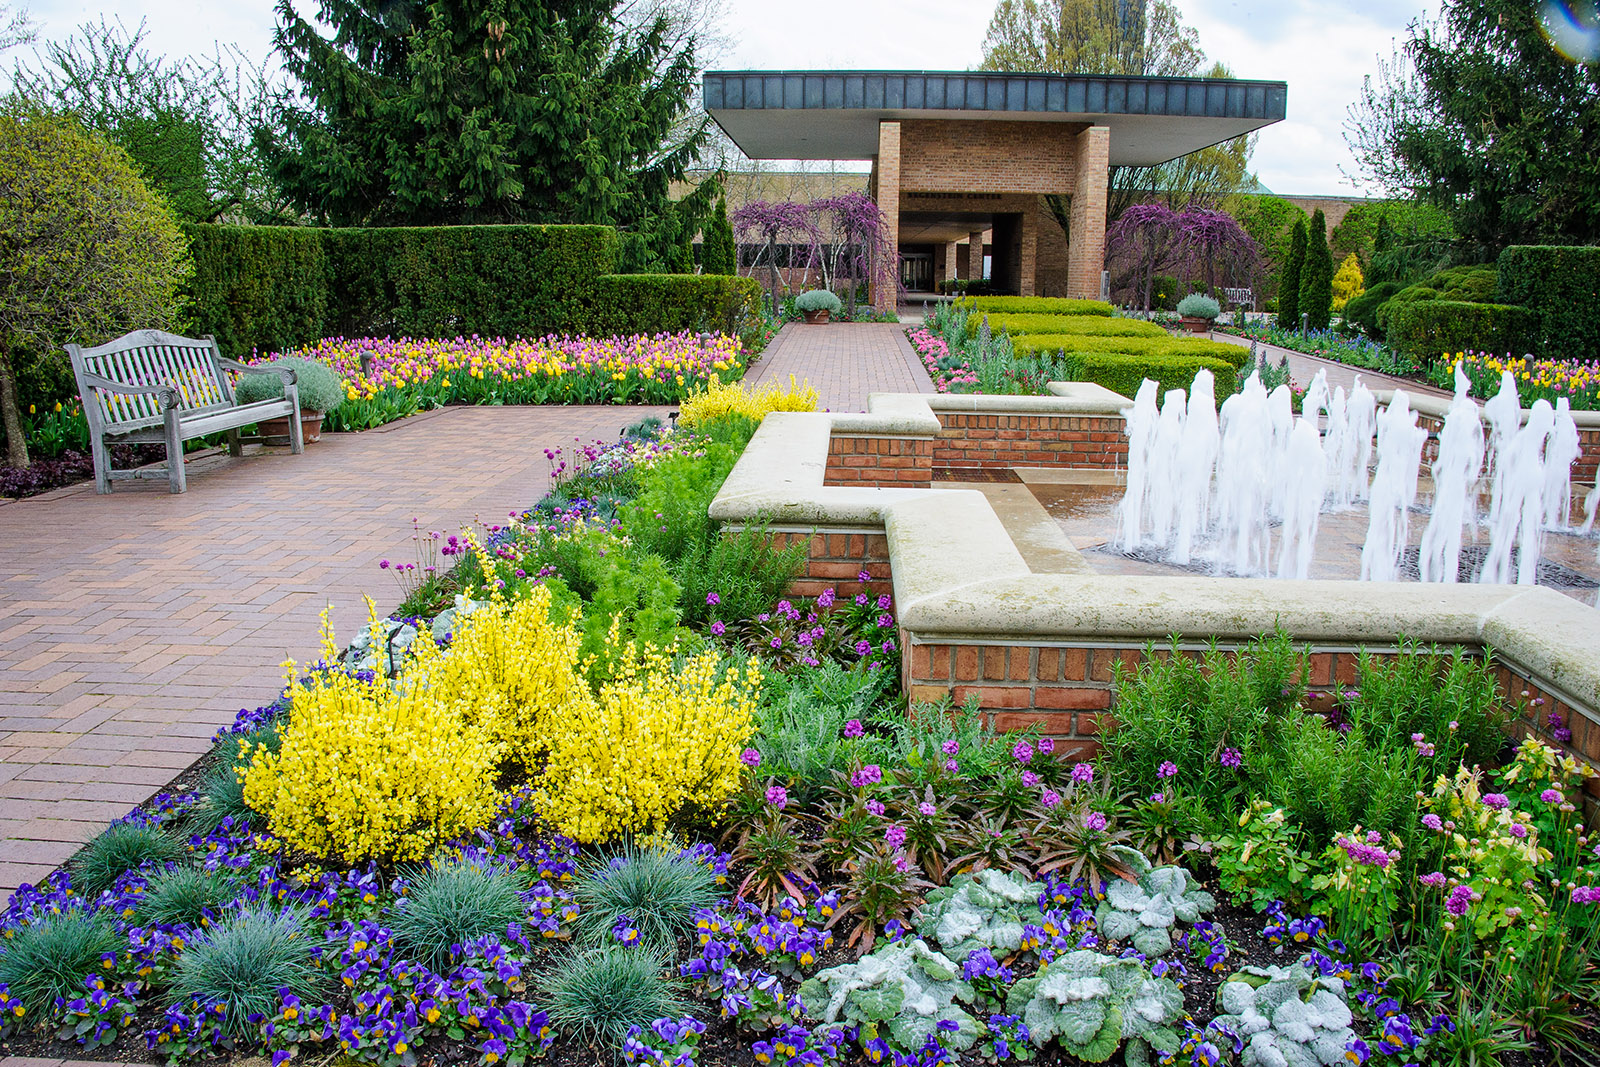 The Stunning Chicago Botanic Garden Will Set A Beautiful Stage For ACE  2015! (Chicago